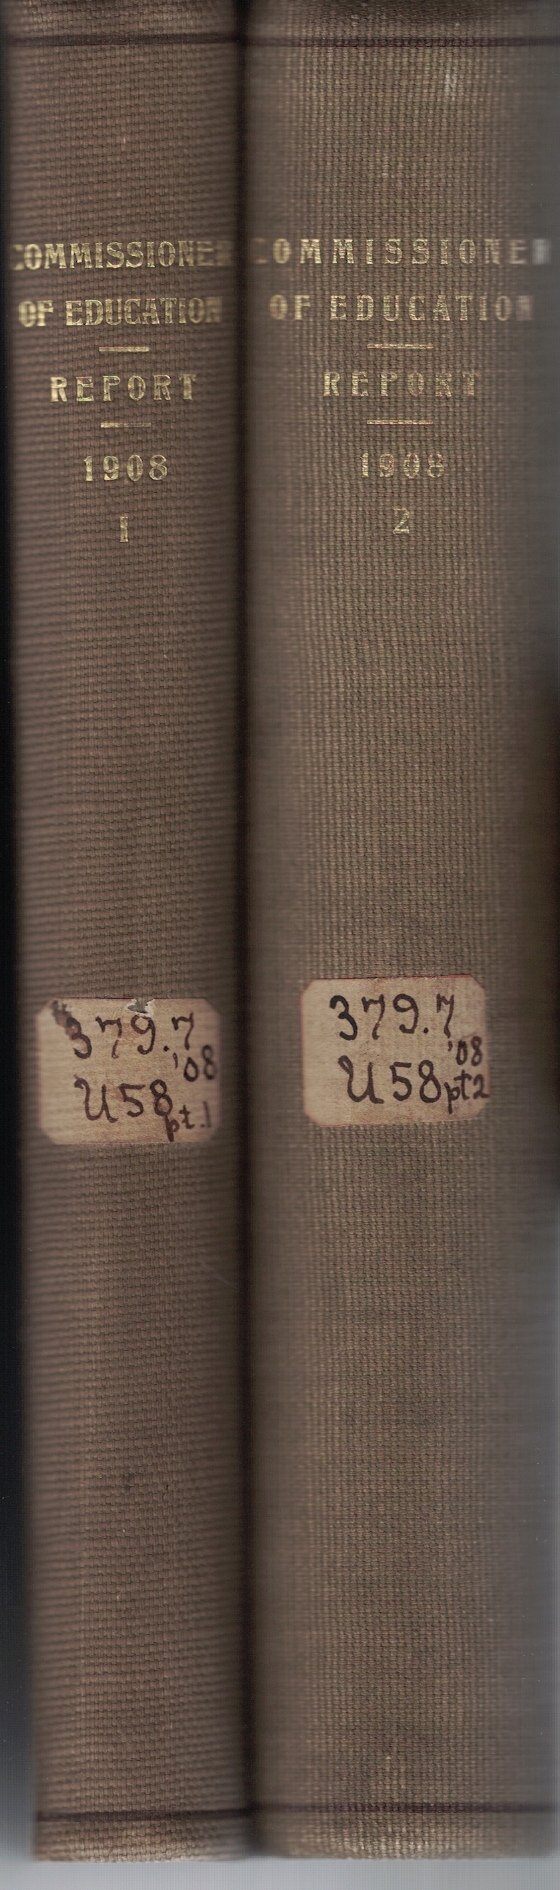 Image for Report of the Commissioner of Education for the Year Ended June 30, 1908 (2 Volume Set)